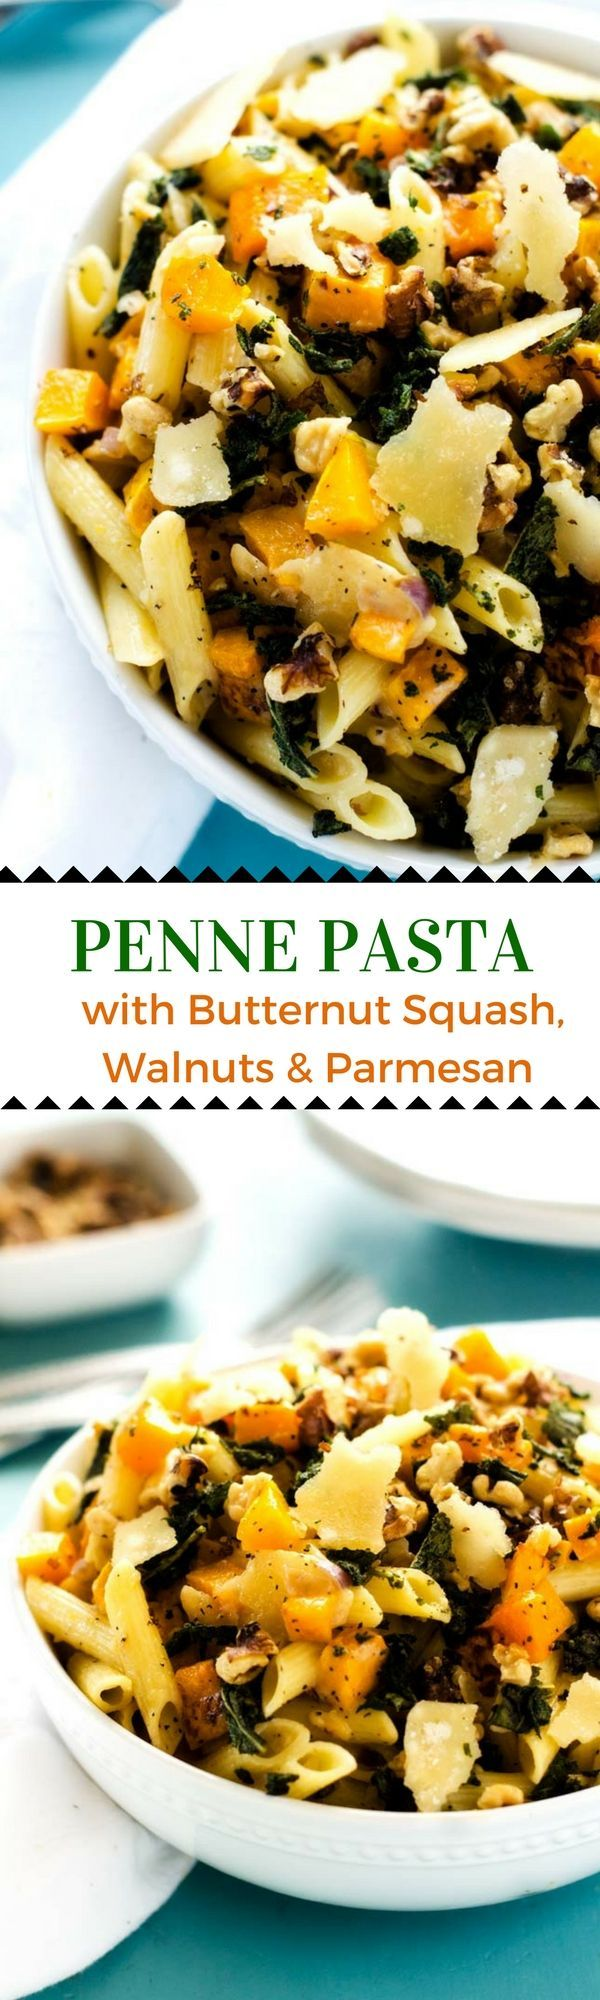 Gluten Free Penne Pasta with Butternut Squash, Walnuts & Parmesan - This Penne Pasta with Butternut Squash, Walnuts & Parmesan offers the best of fall. I love the crispy sage, crunchy walnuts and the hint of saltiness from the Parmesan. And of course, there is that delicious roasted butternut squash.  This vegetarian dish is easily made dairy-free by using dairy free parmesan and butter.  #ad #FamilyPastaTime